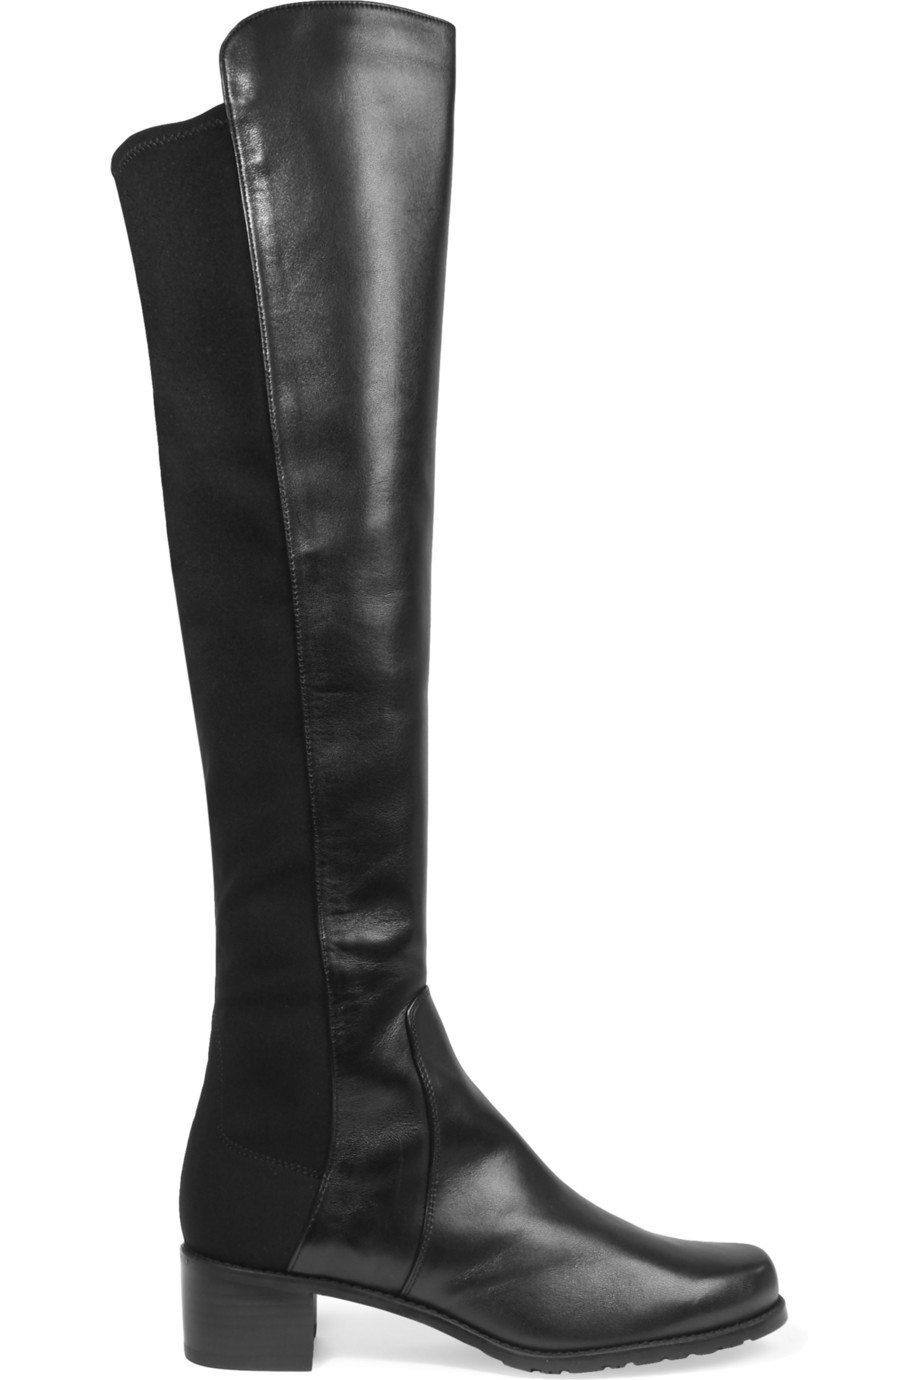 stuart weitzman reserve leather and stretch the knee